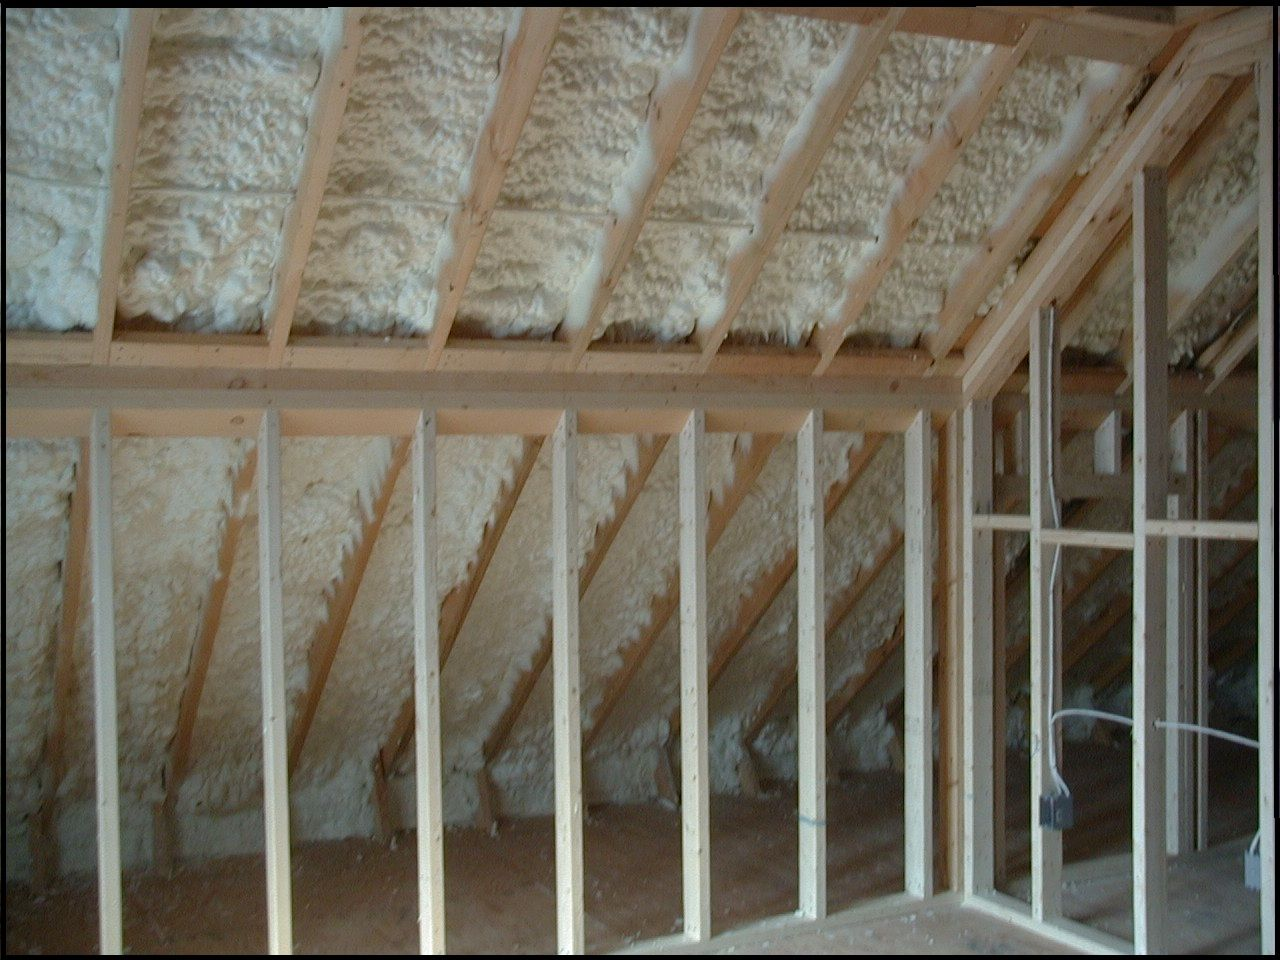 I Know It Will Be Black Or Grey But I Really Don T Like This Look If It Is The Only Option Tha Diy Spray Foam Insulation Foam Insulation Diy Foam Insulation